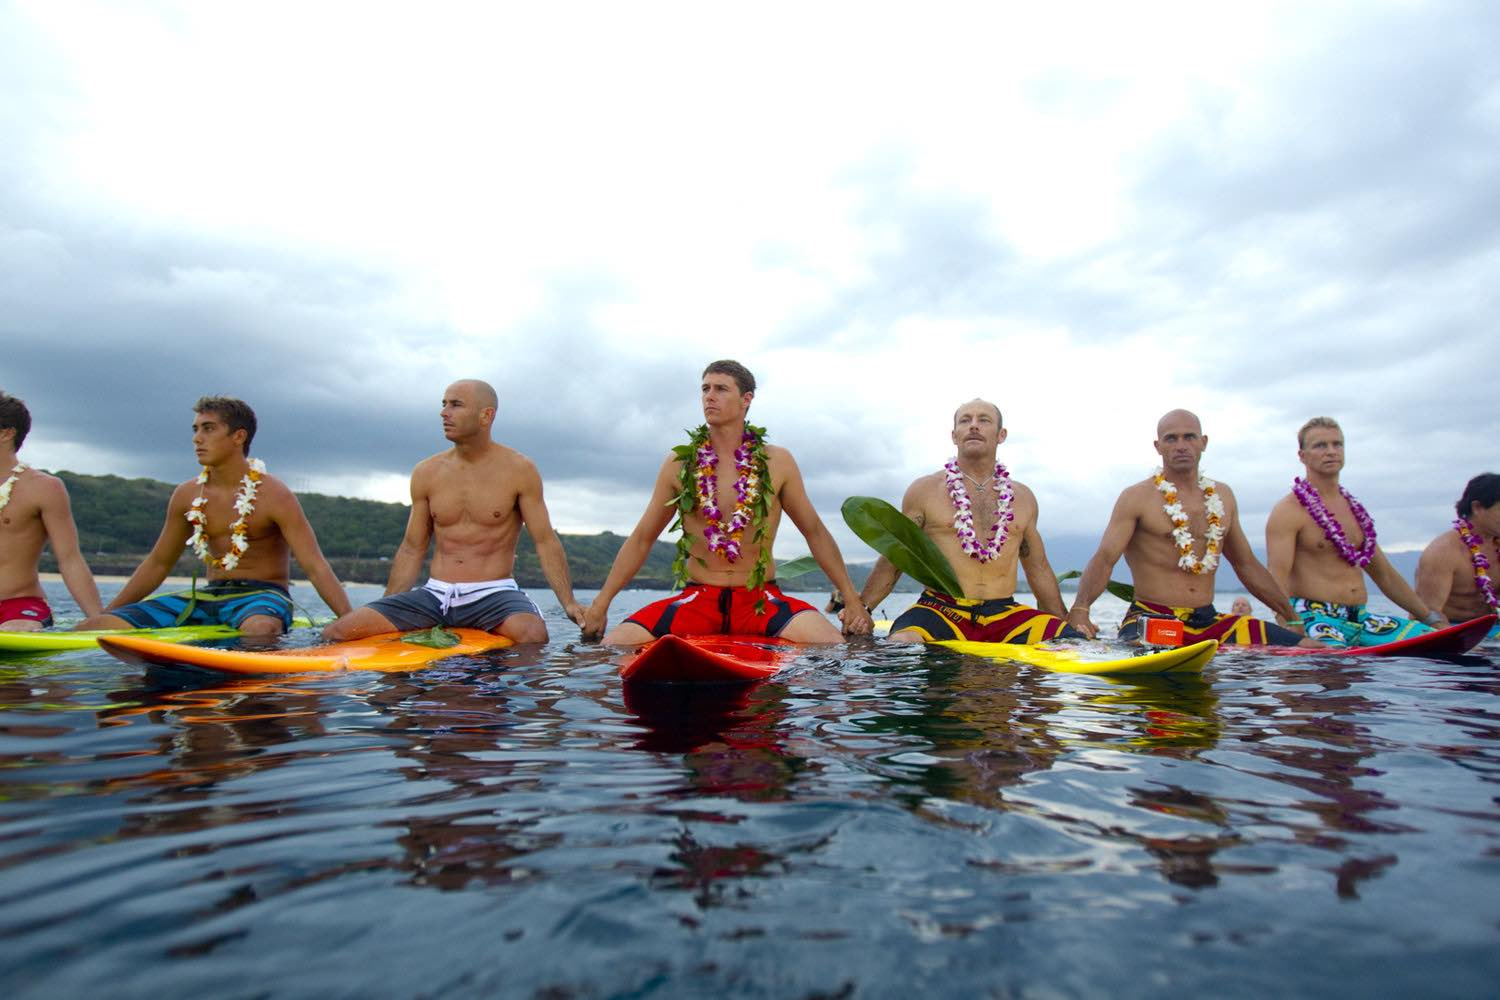 Tom Carroll (holding hands with Kelly Slater, to his right) at the Eddie Aikau Opening Ceremony. Photo: Courtesy of Quiksilver